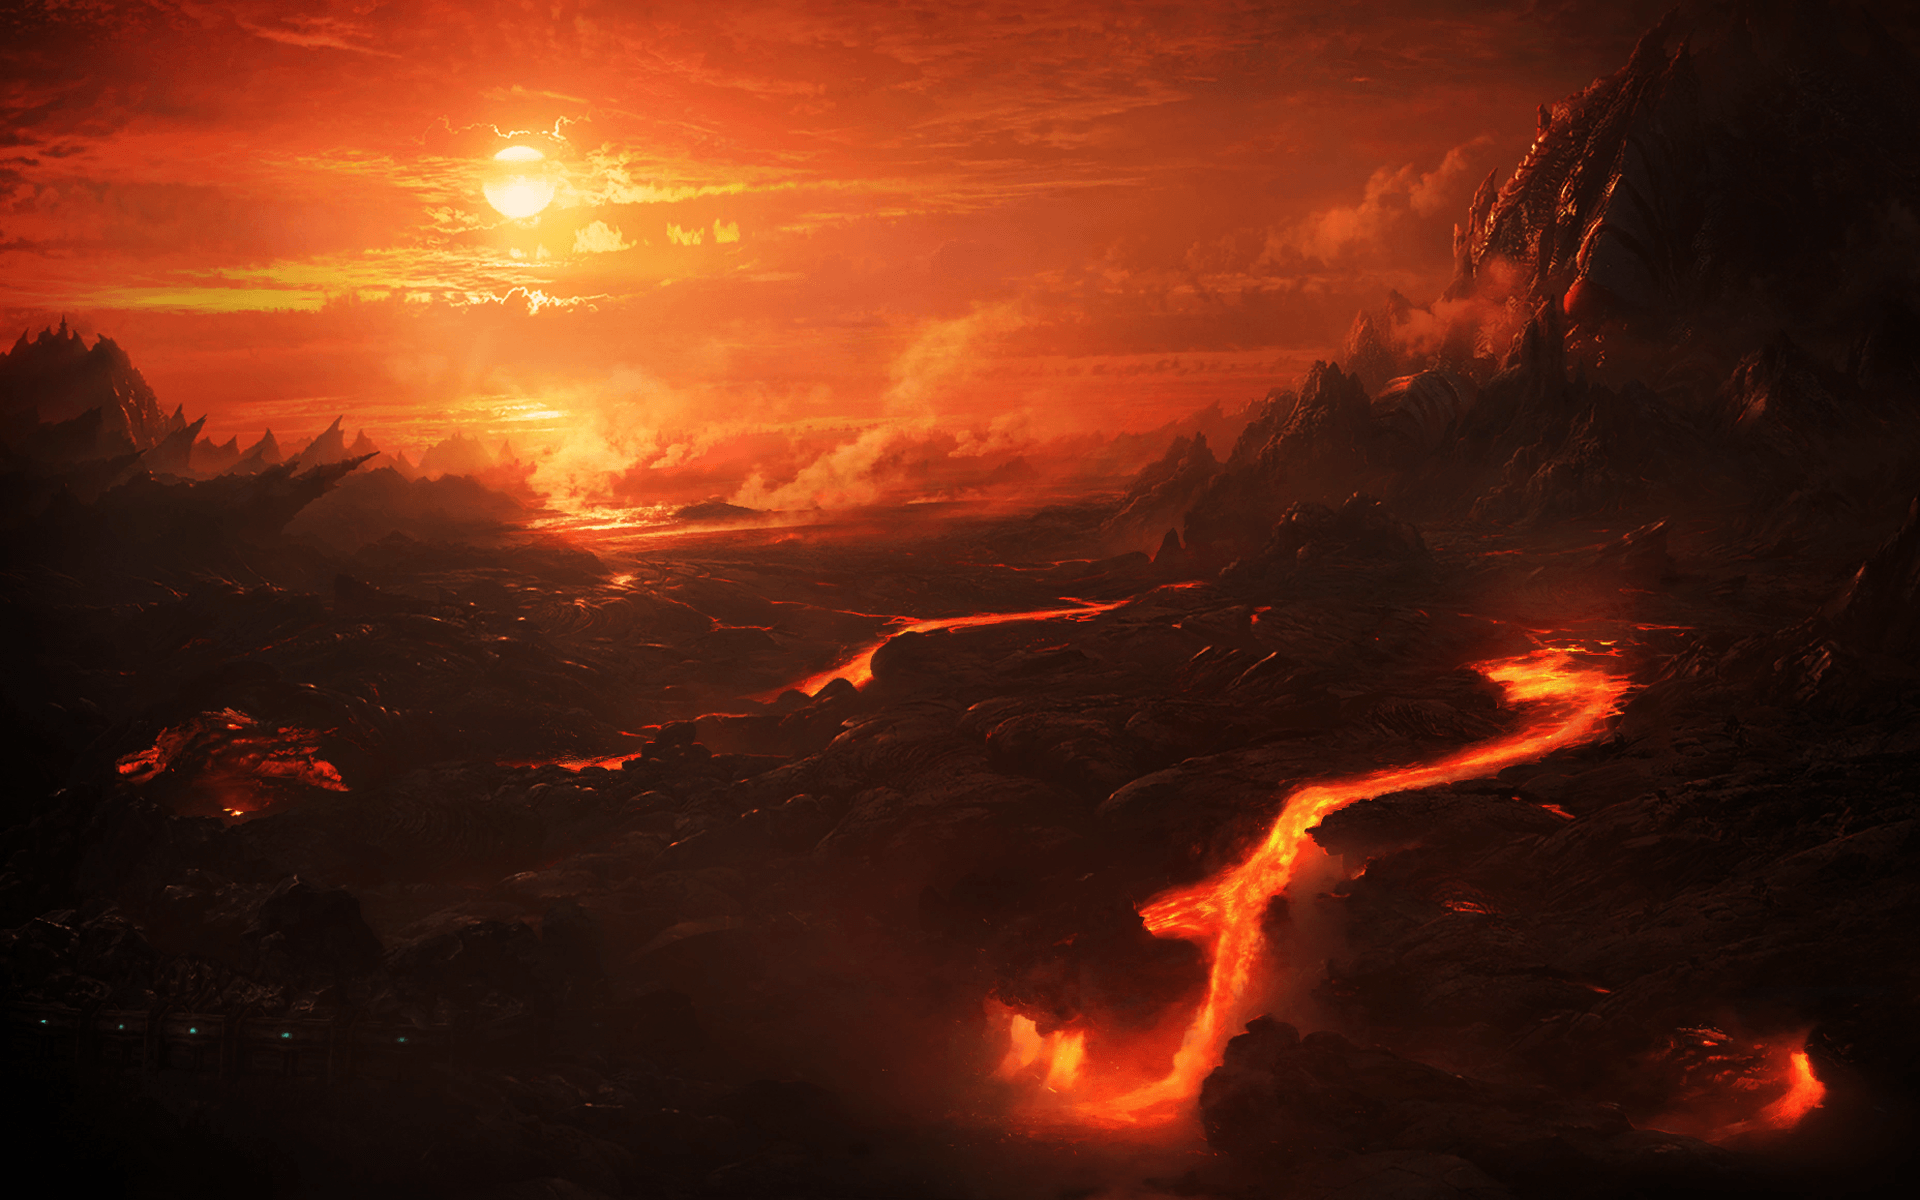 Lava Wallpapers HD Backgrounds, Image, Pics, Photos Free Download